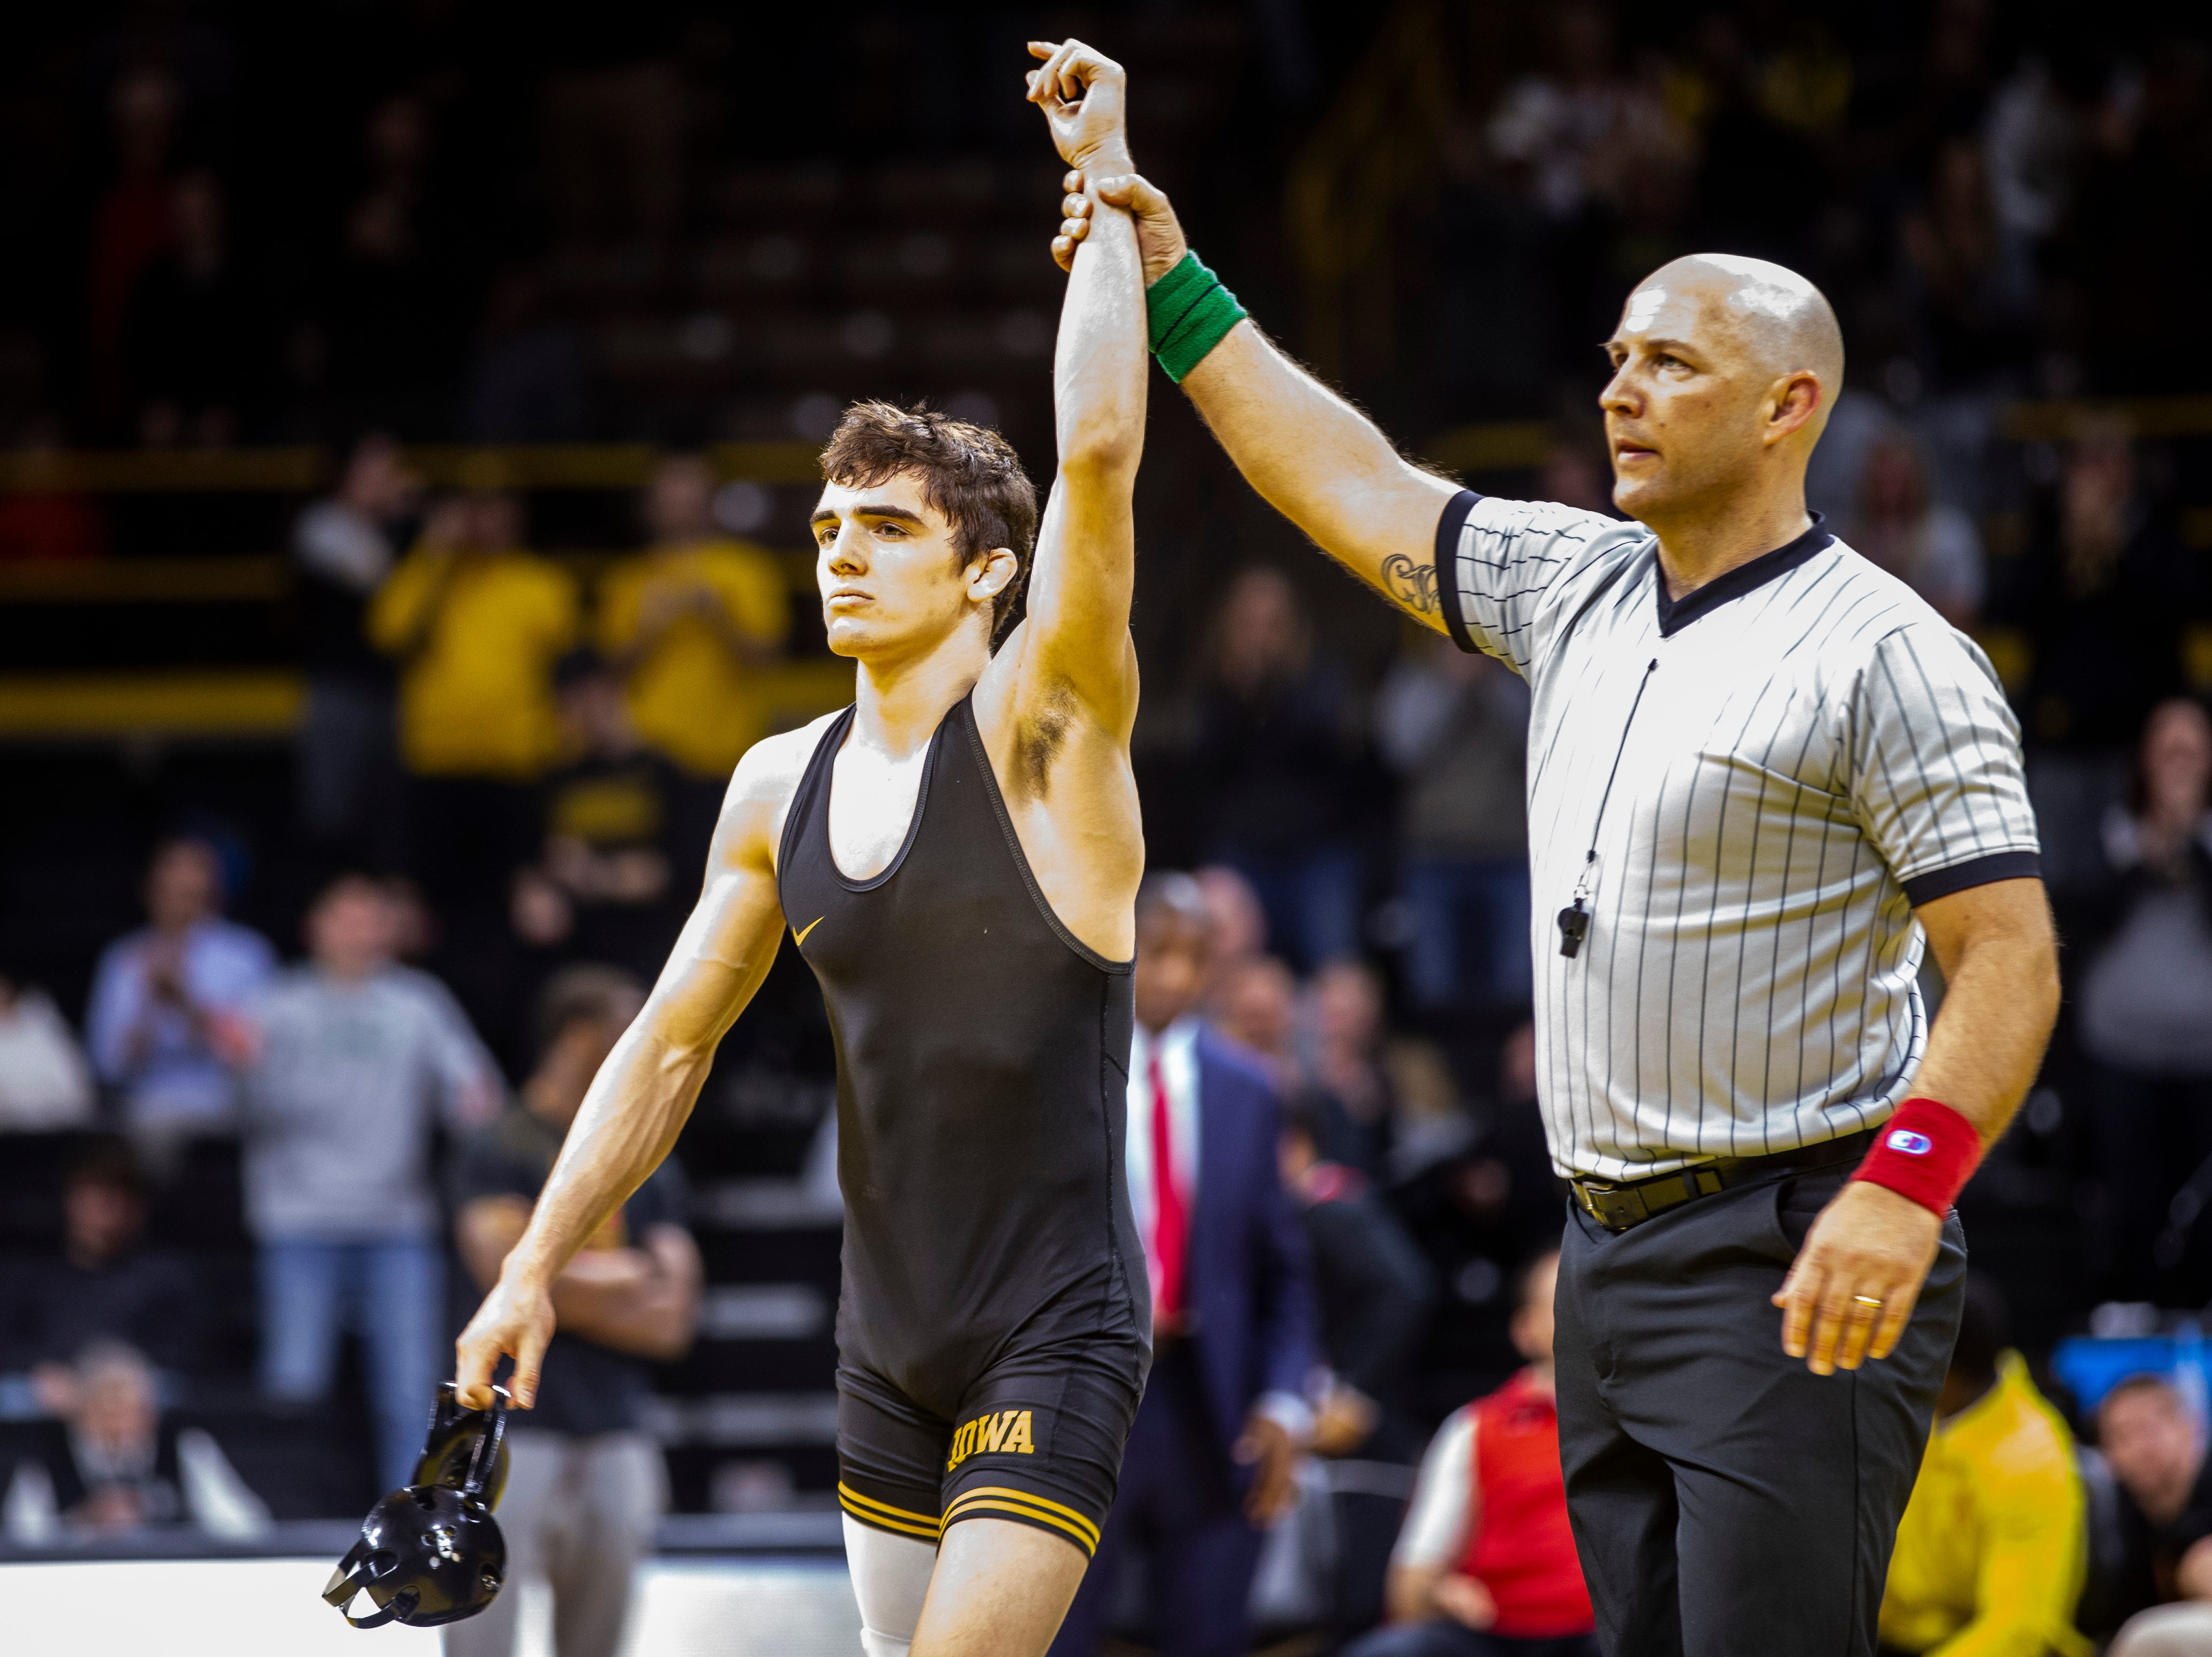 Iowa's Paul Glynn has his hand raised after pinning Maryland's Orion Anderson at 133 during a NCAA Big Ten Conference wrestling dual on Friday, Feb. 8, 2019 at Carver-Hawkeye Arena in Iowa City, Iowa.